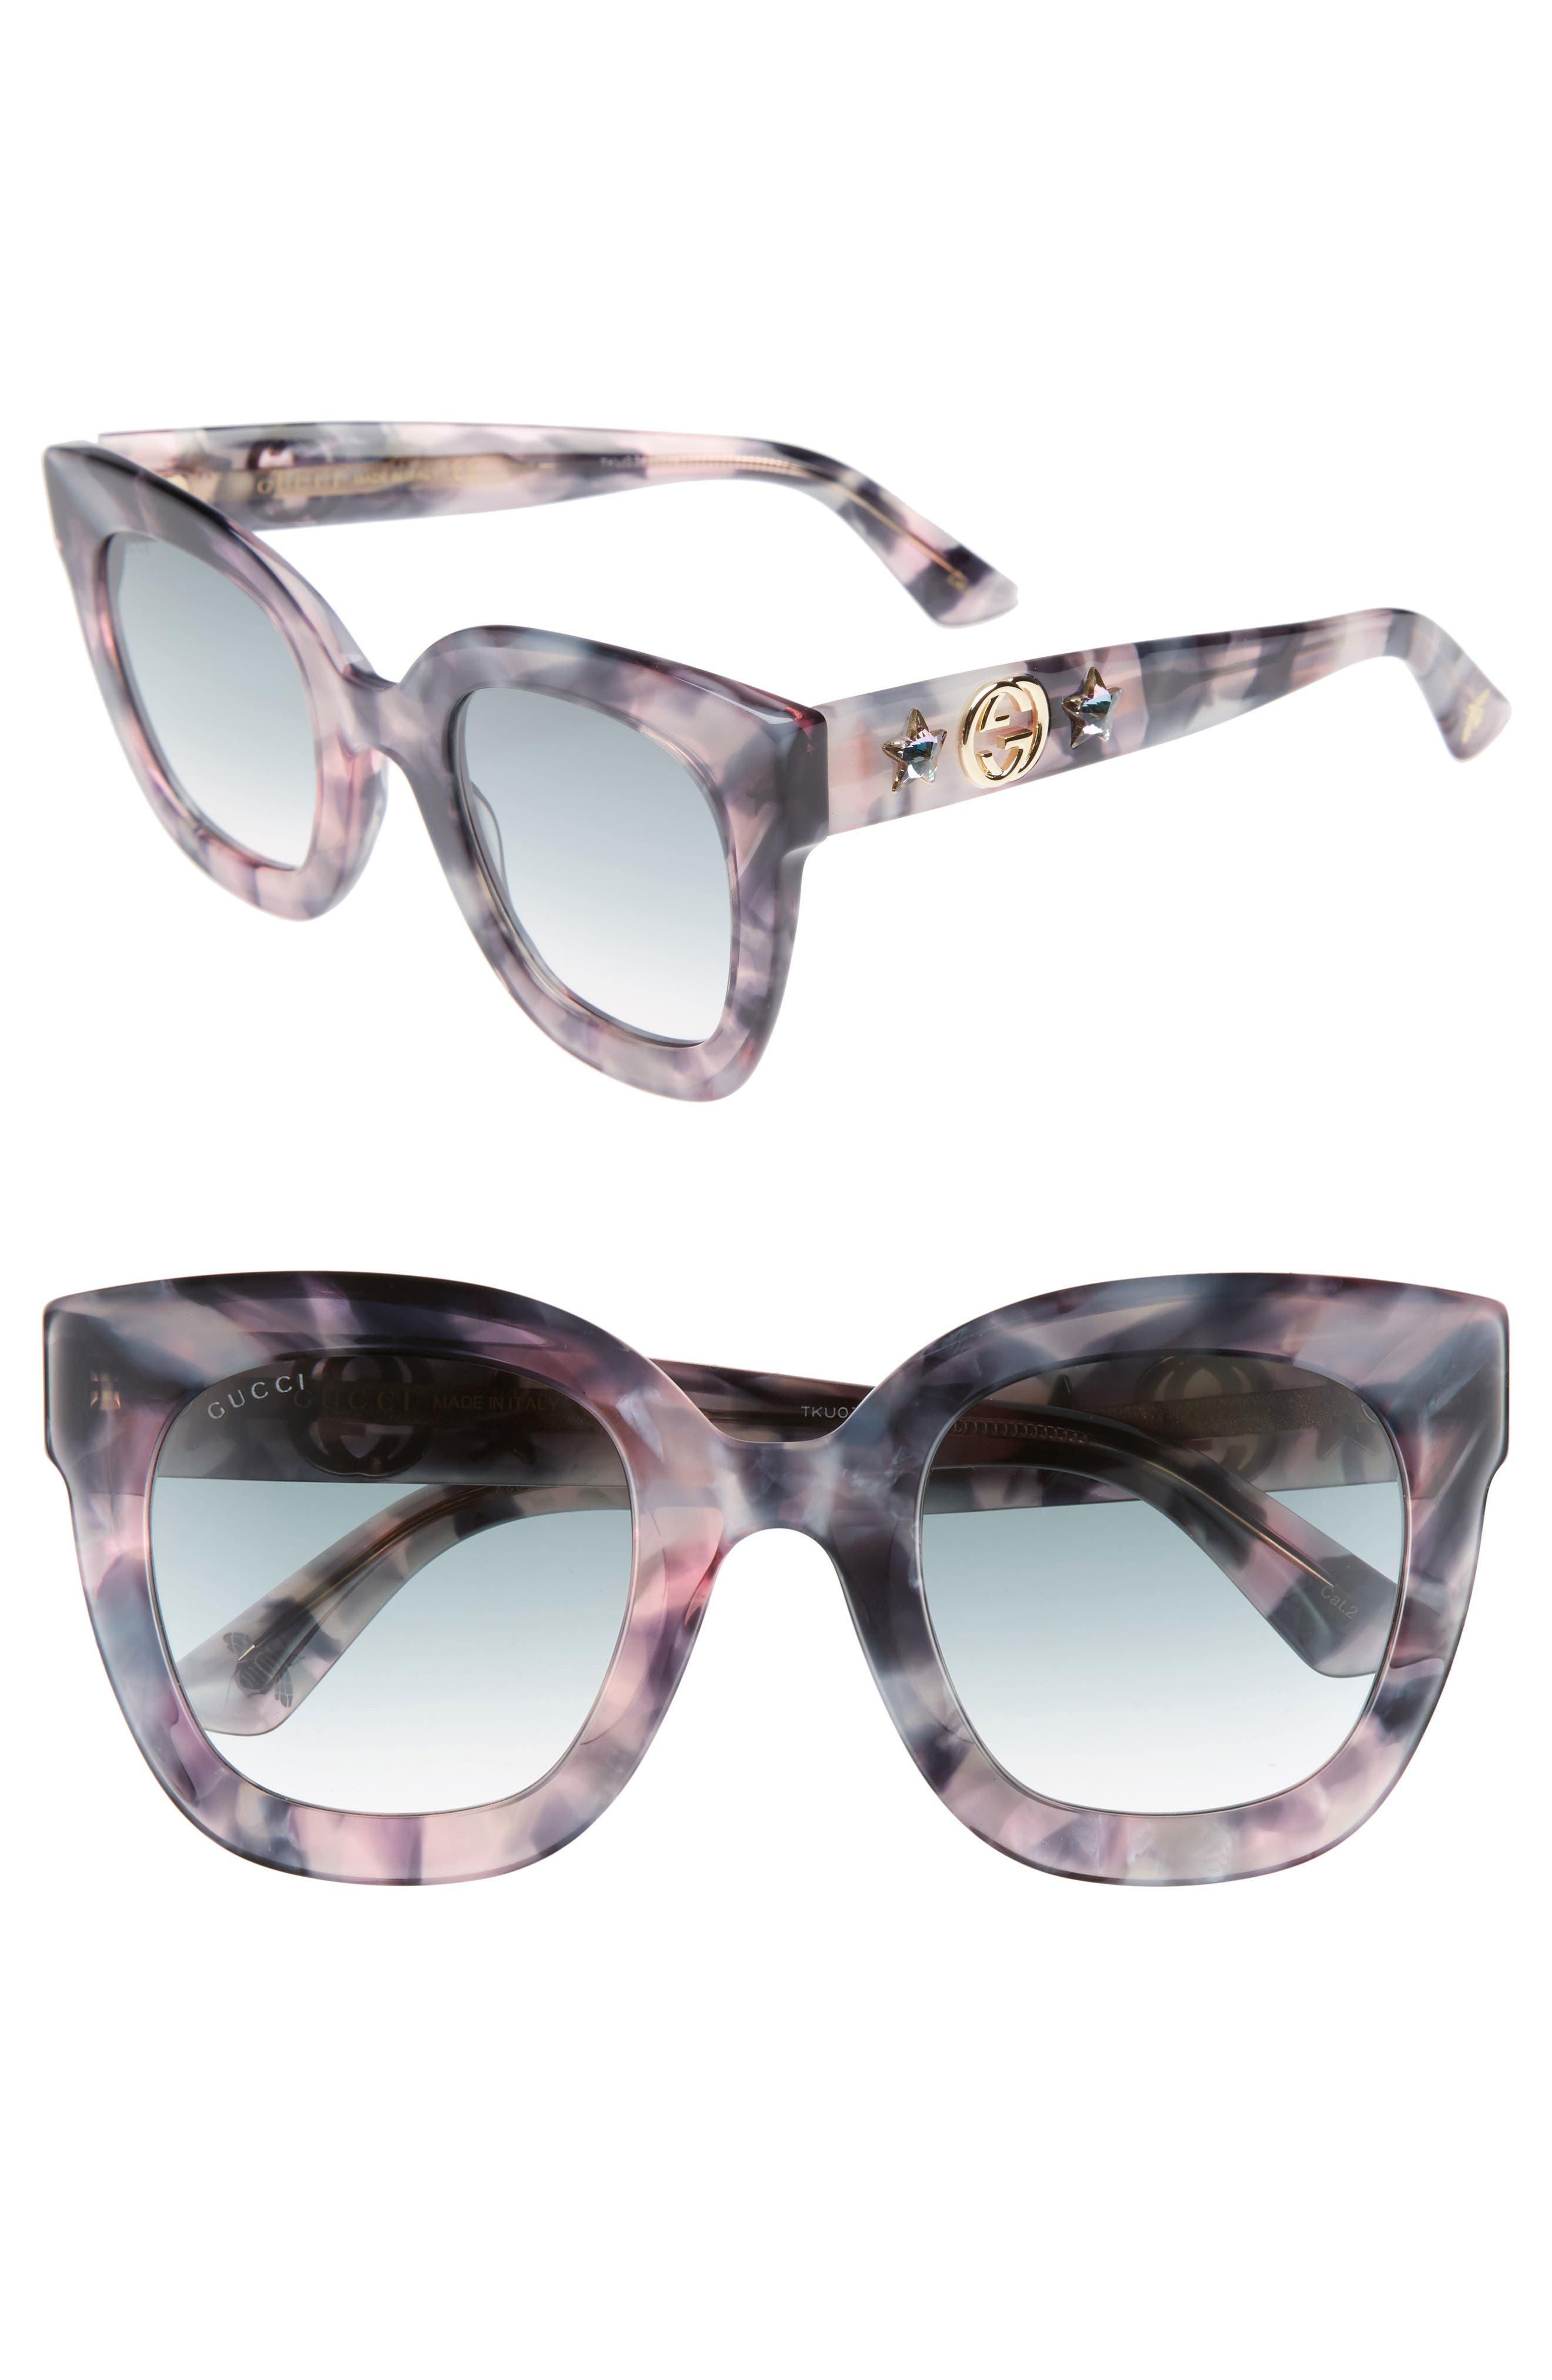 Main Image - Gucci 49mm Cat Eye Sunglasses